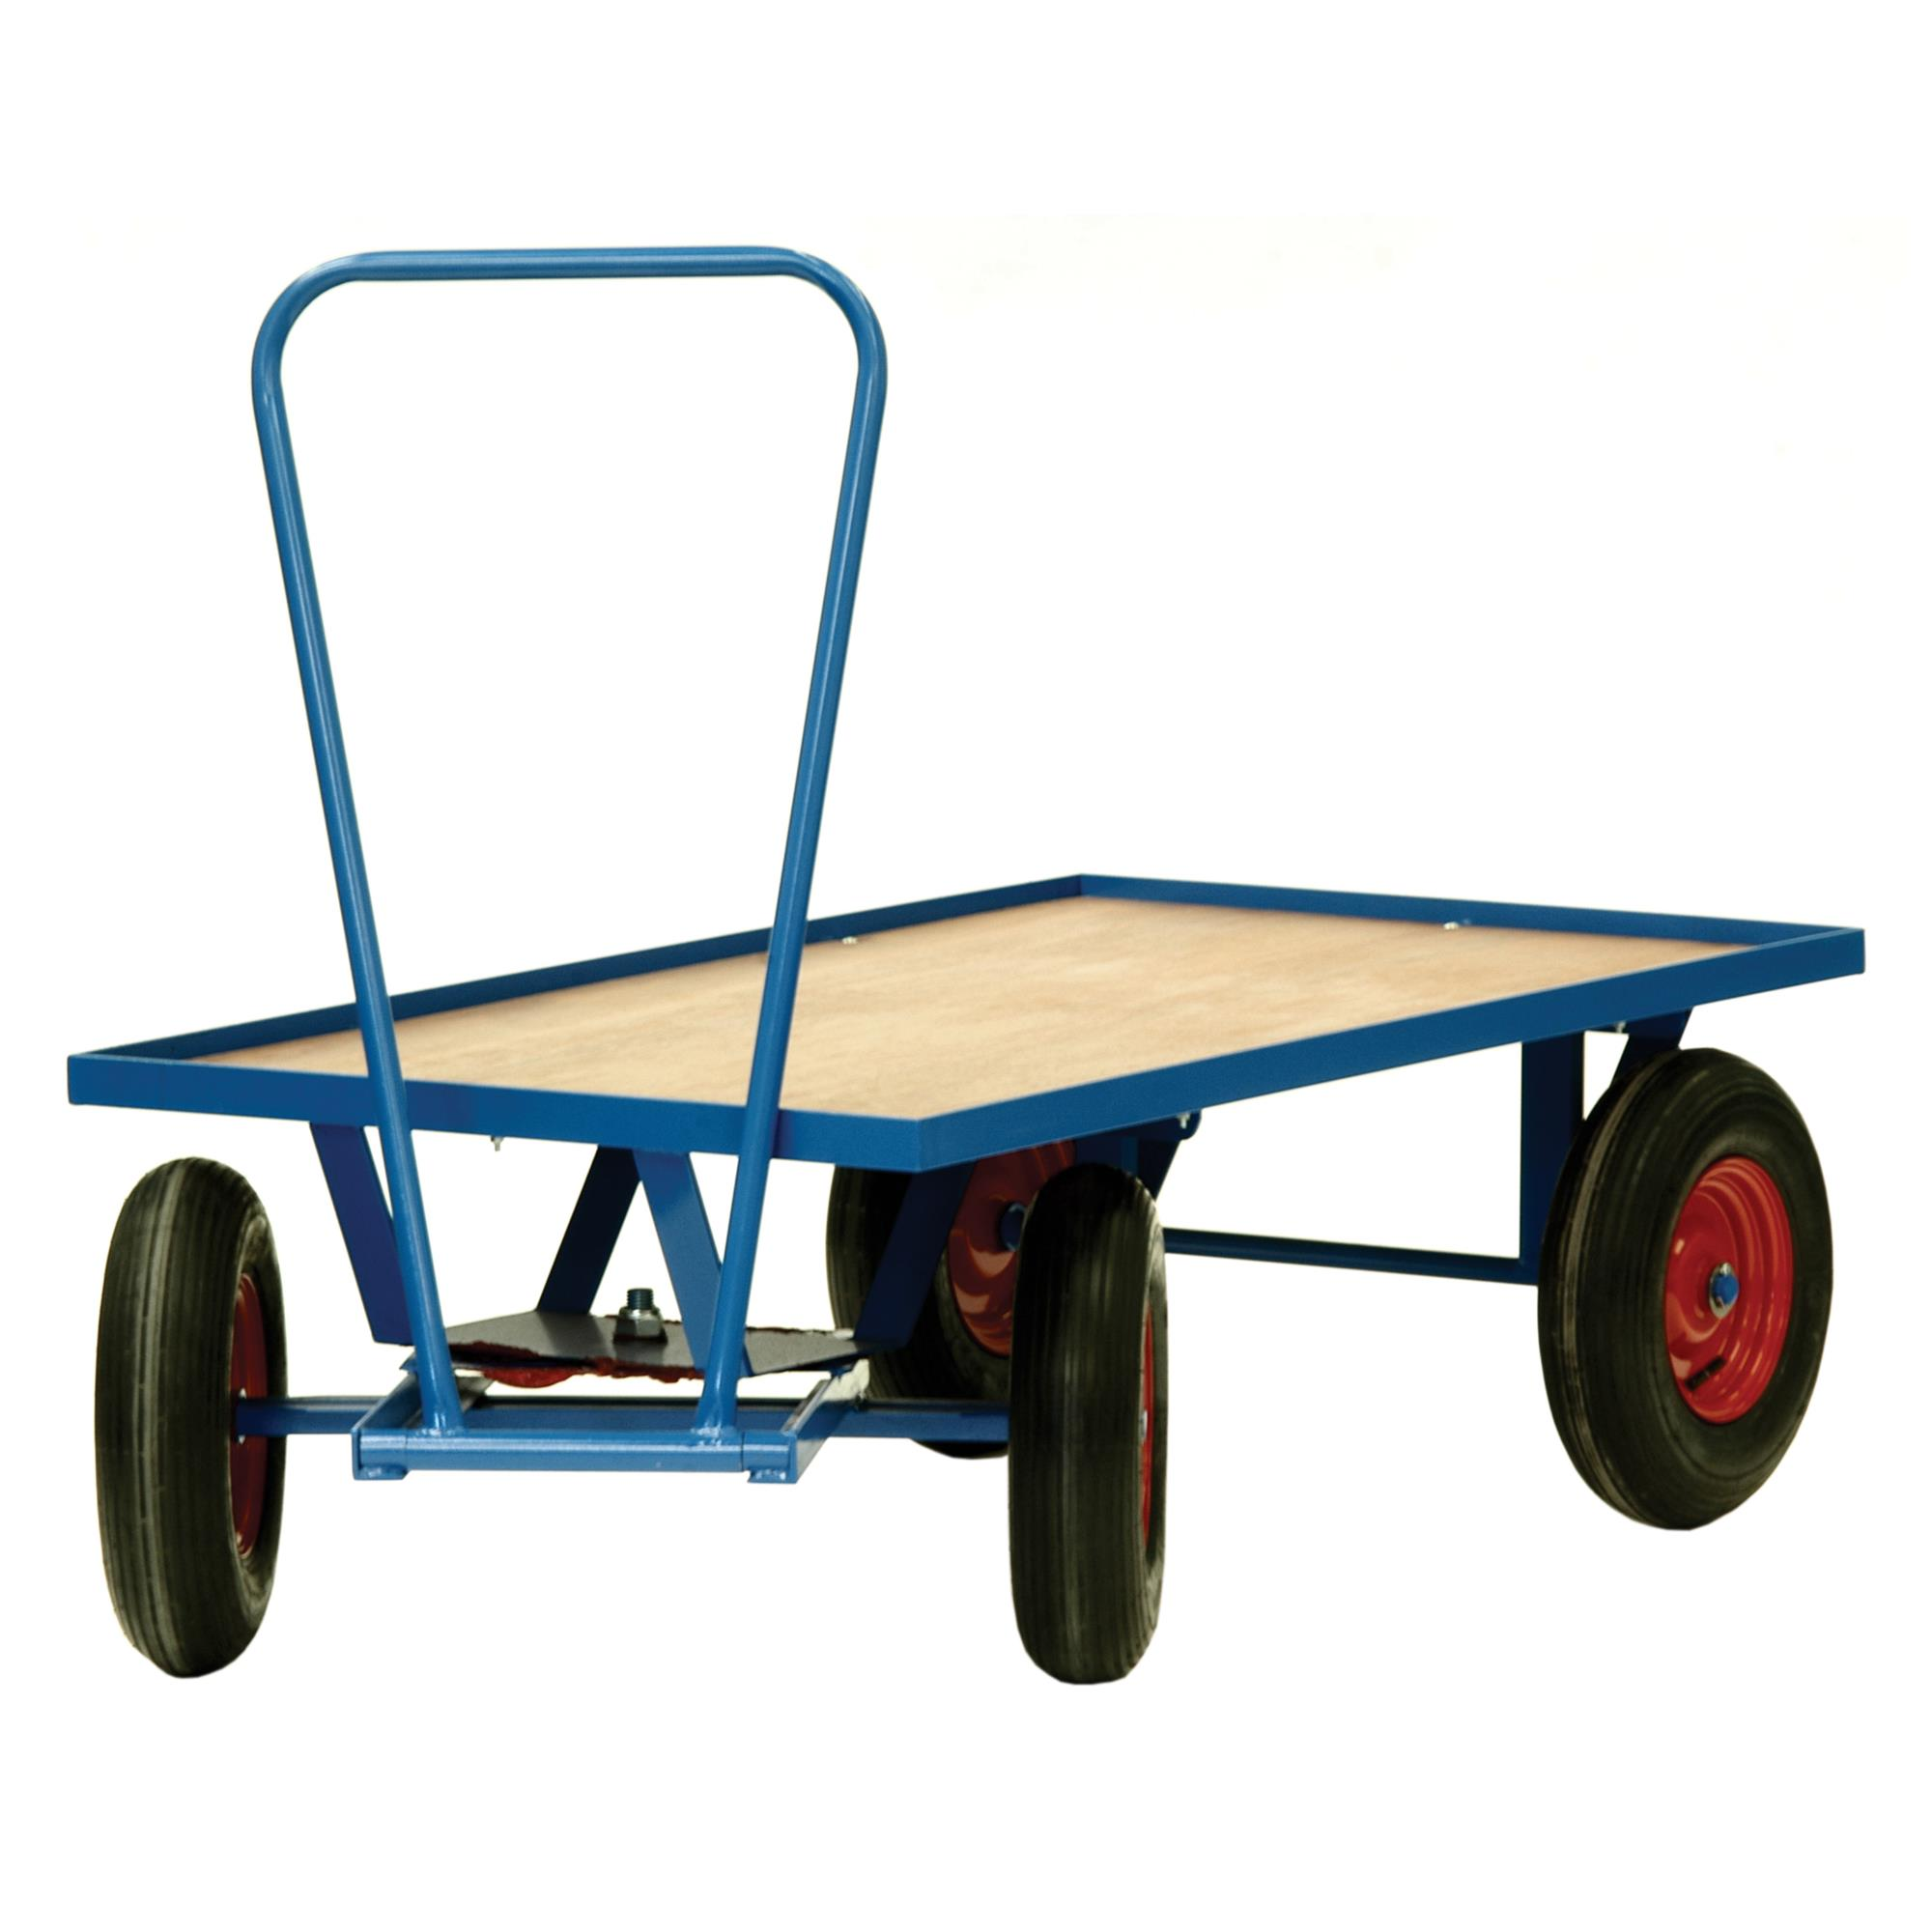 Large Wheel Warehouse & Distribution Trolley